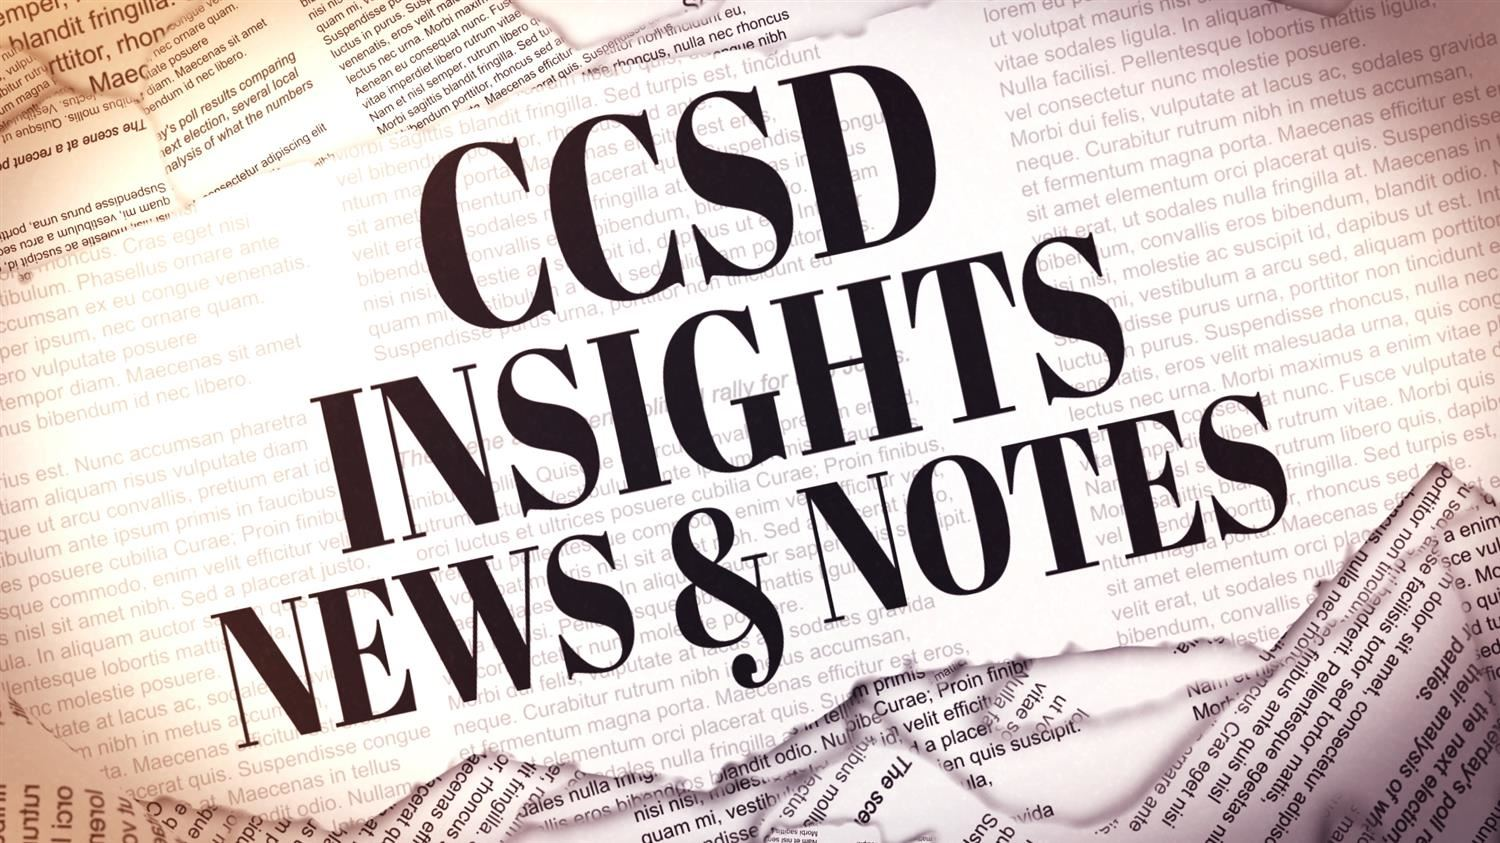 CCSD Insights, News & Notes